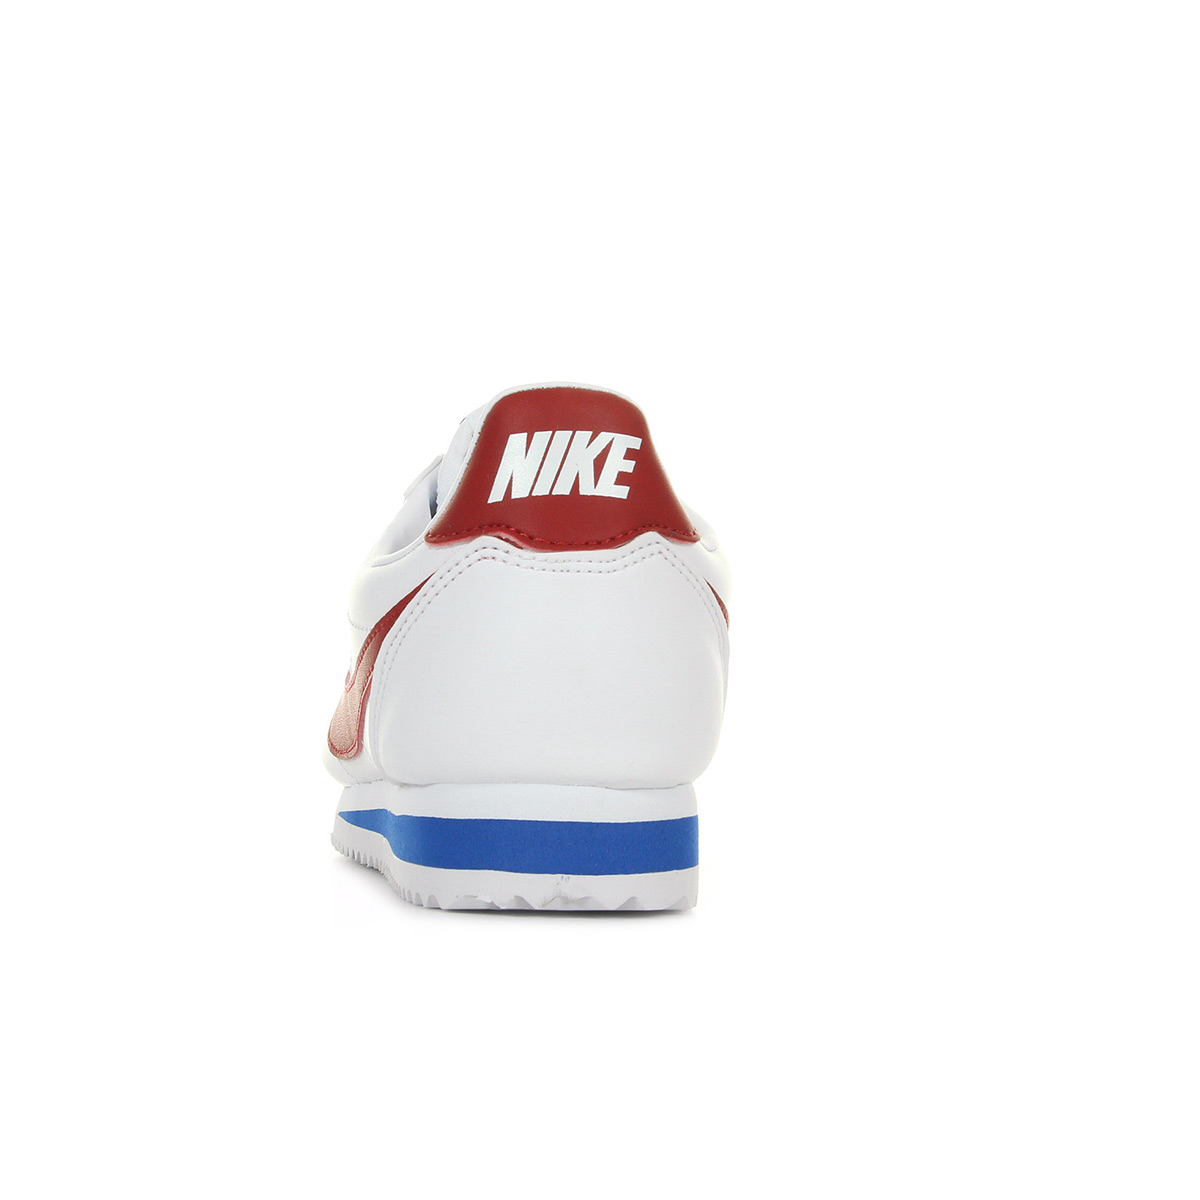 more photos c9911 a4834 ... Nike Classic Cortez Leather ...